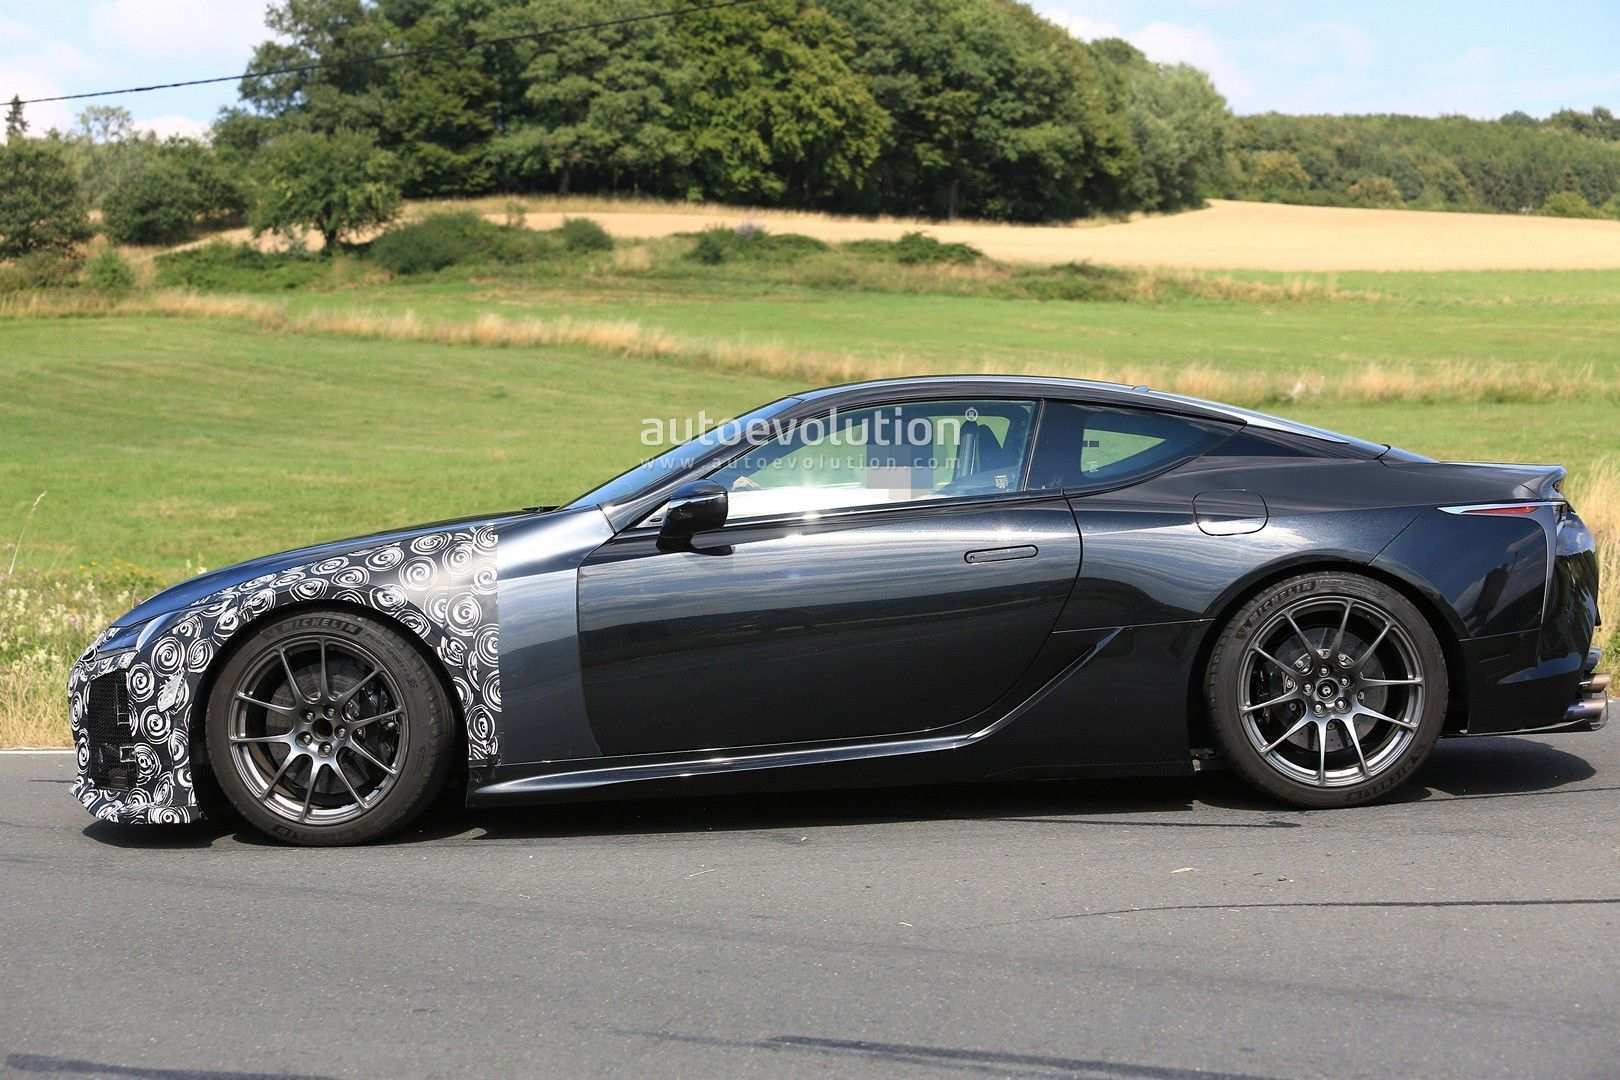 55 Gallery of 2020 Lexus Lf Lc Performance and New Engine by 2020 Lexus Lf Lc